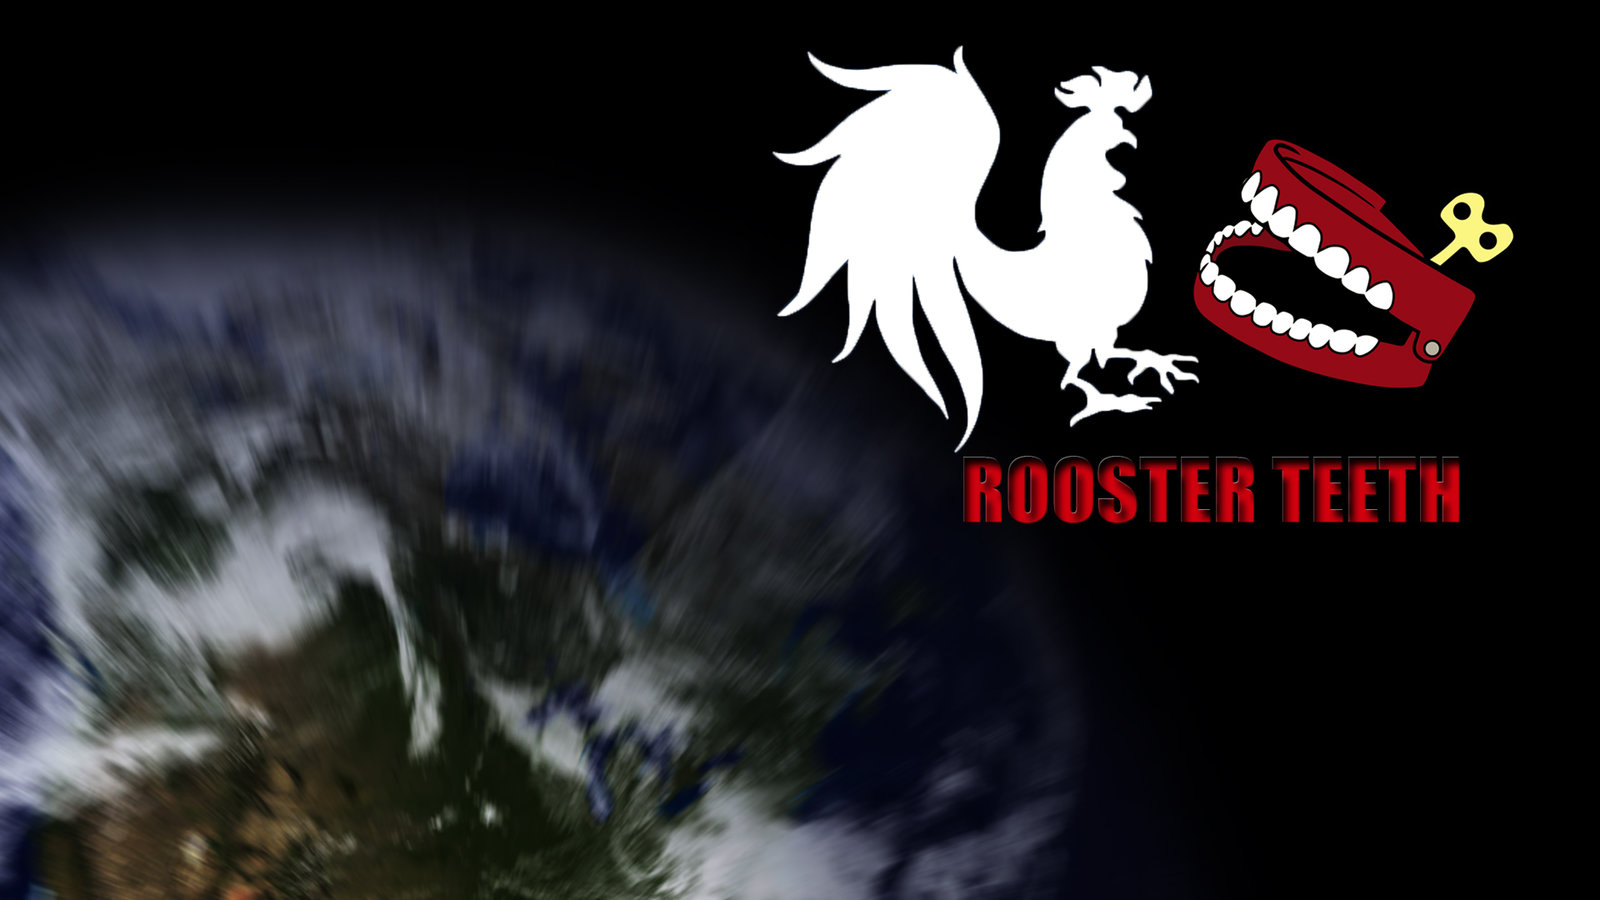 Rooster Teeth Wallpaper Search Results newdesktopwallpapersinfo 1600x900